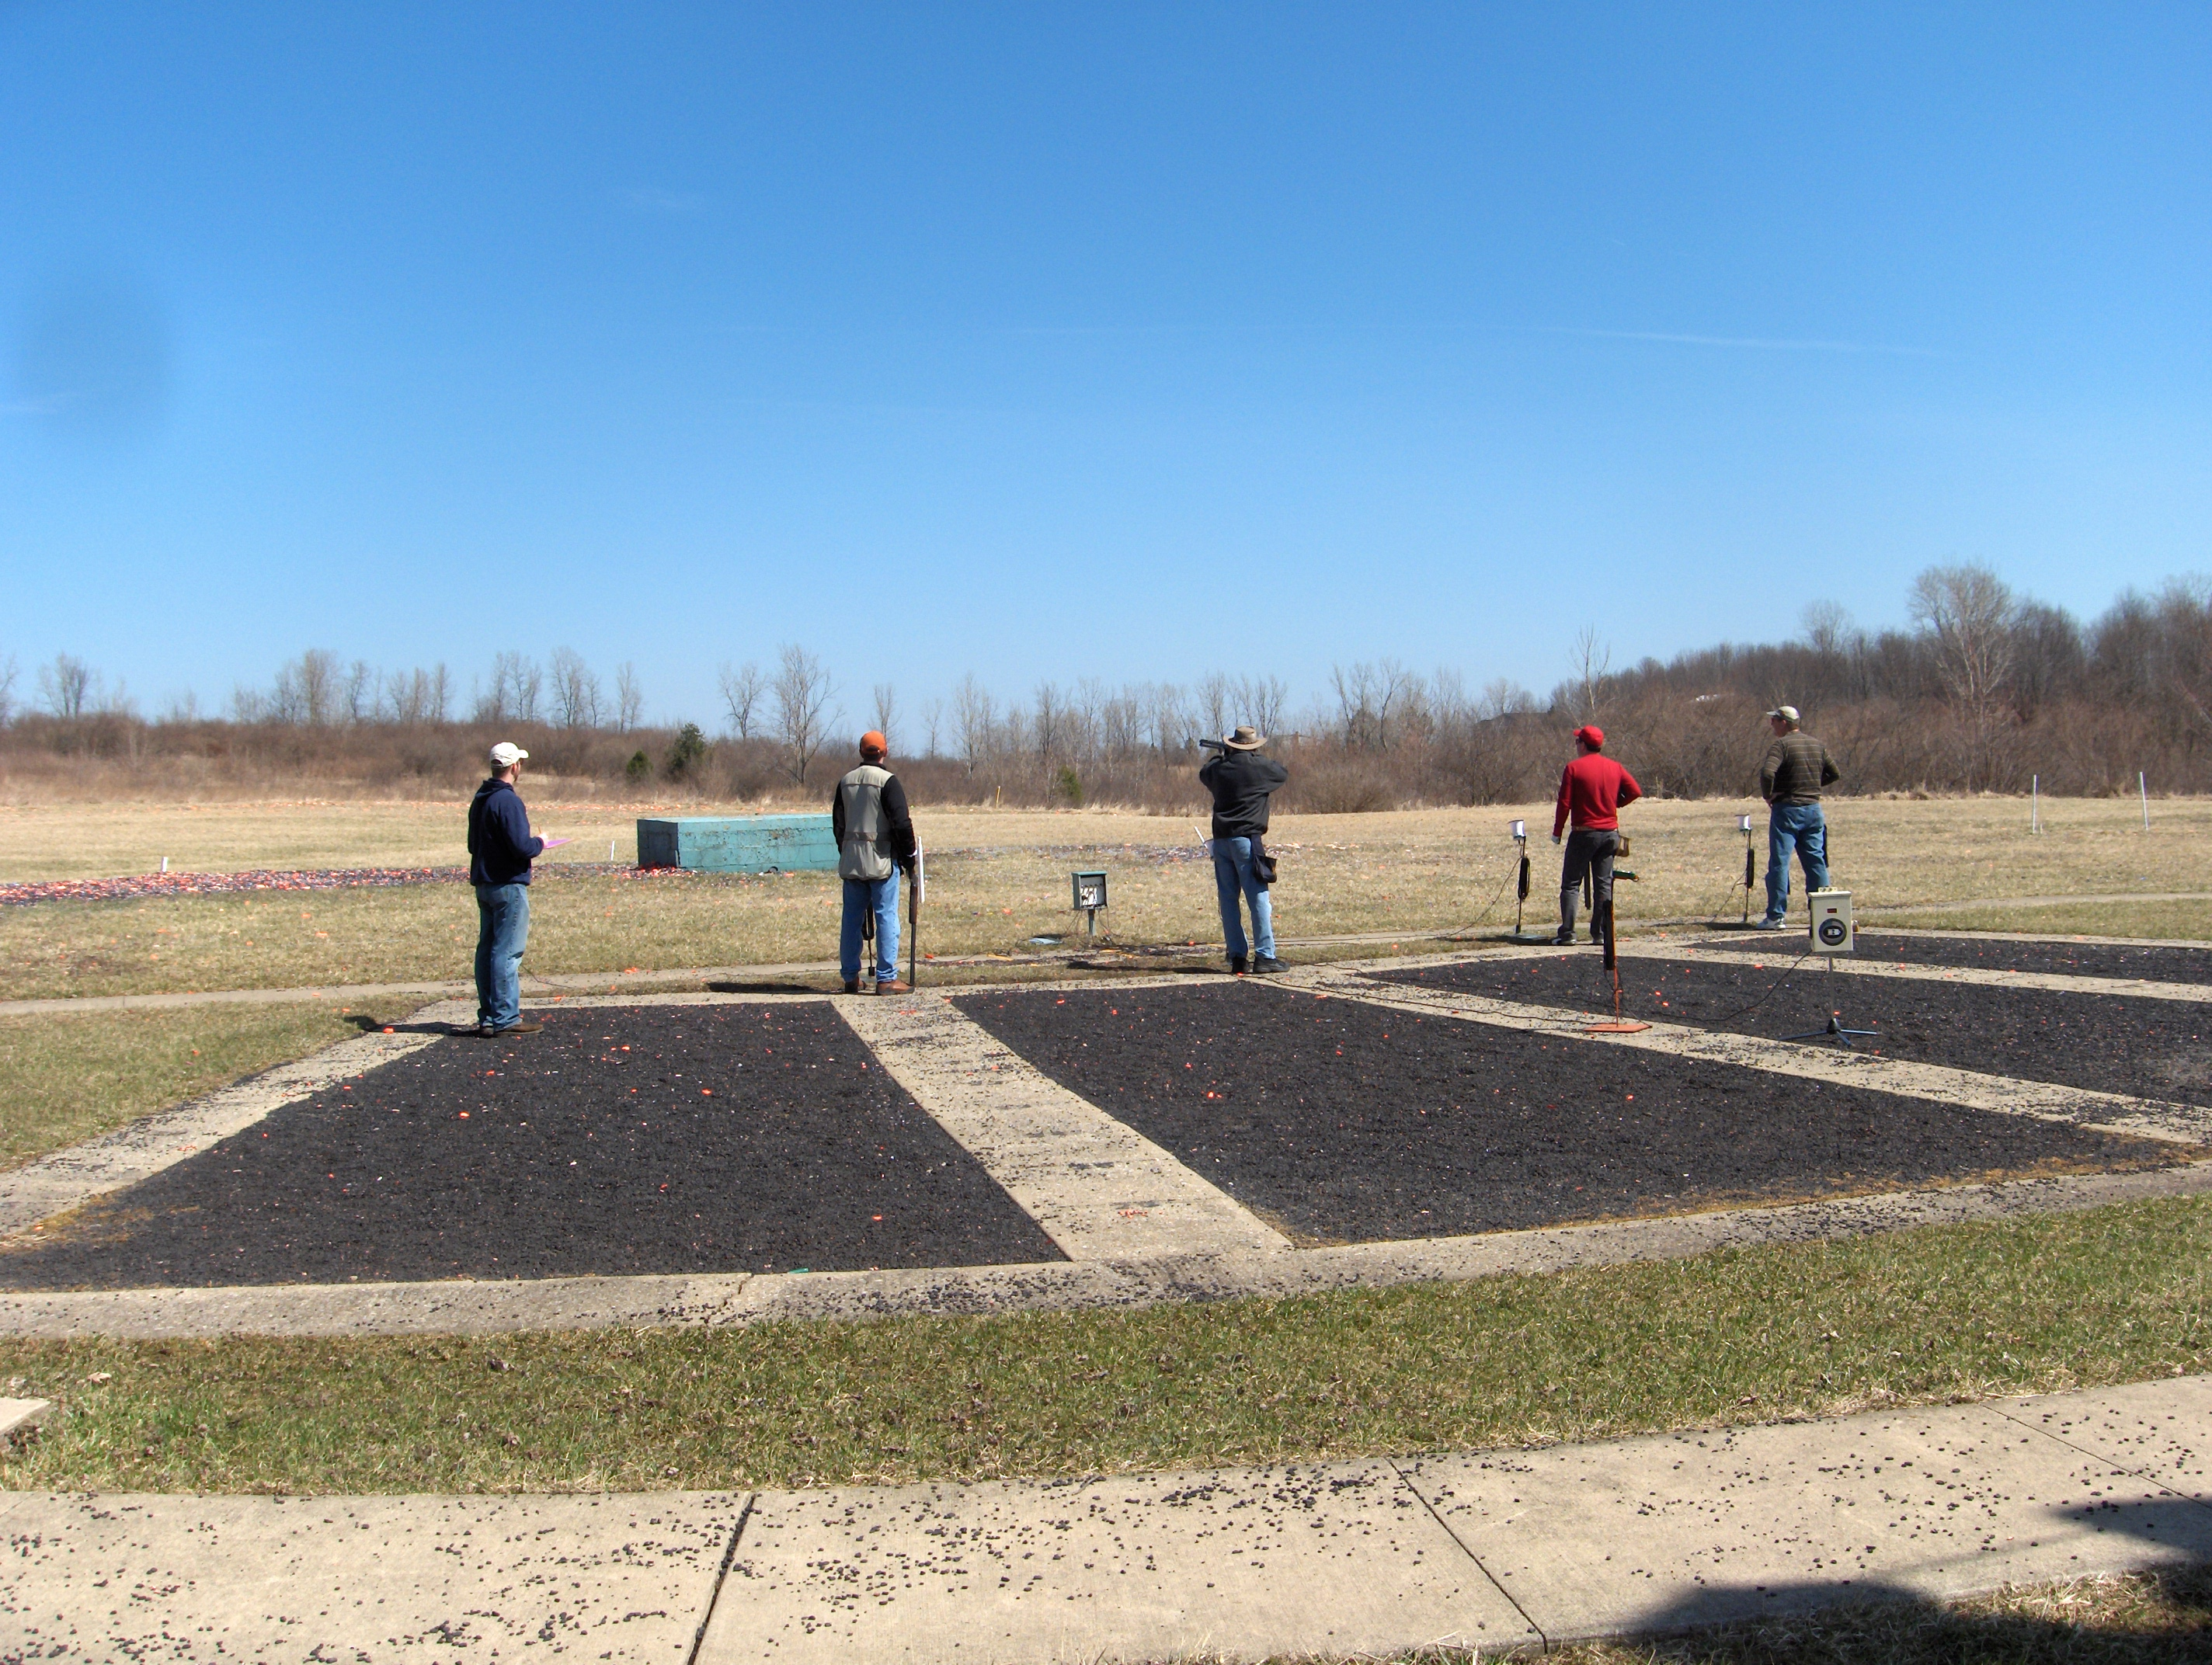 Trap shooters enjoying a round!